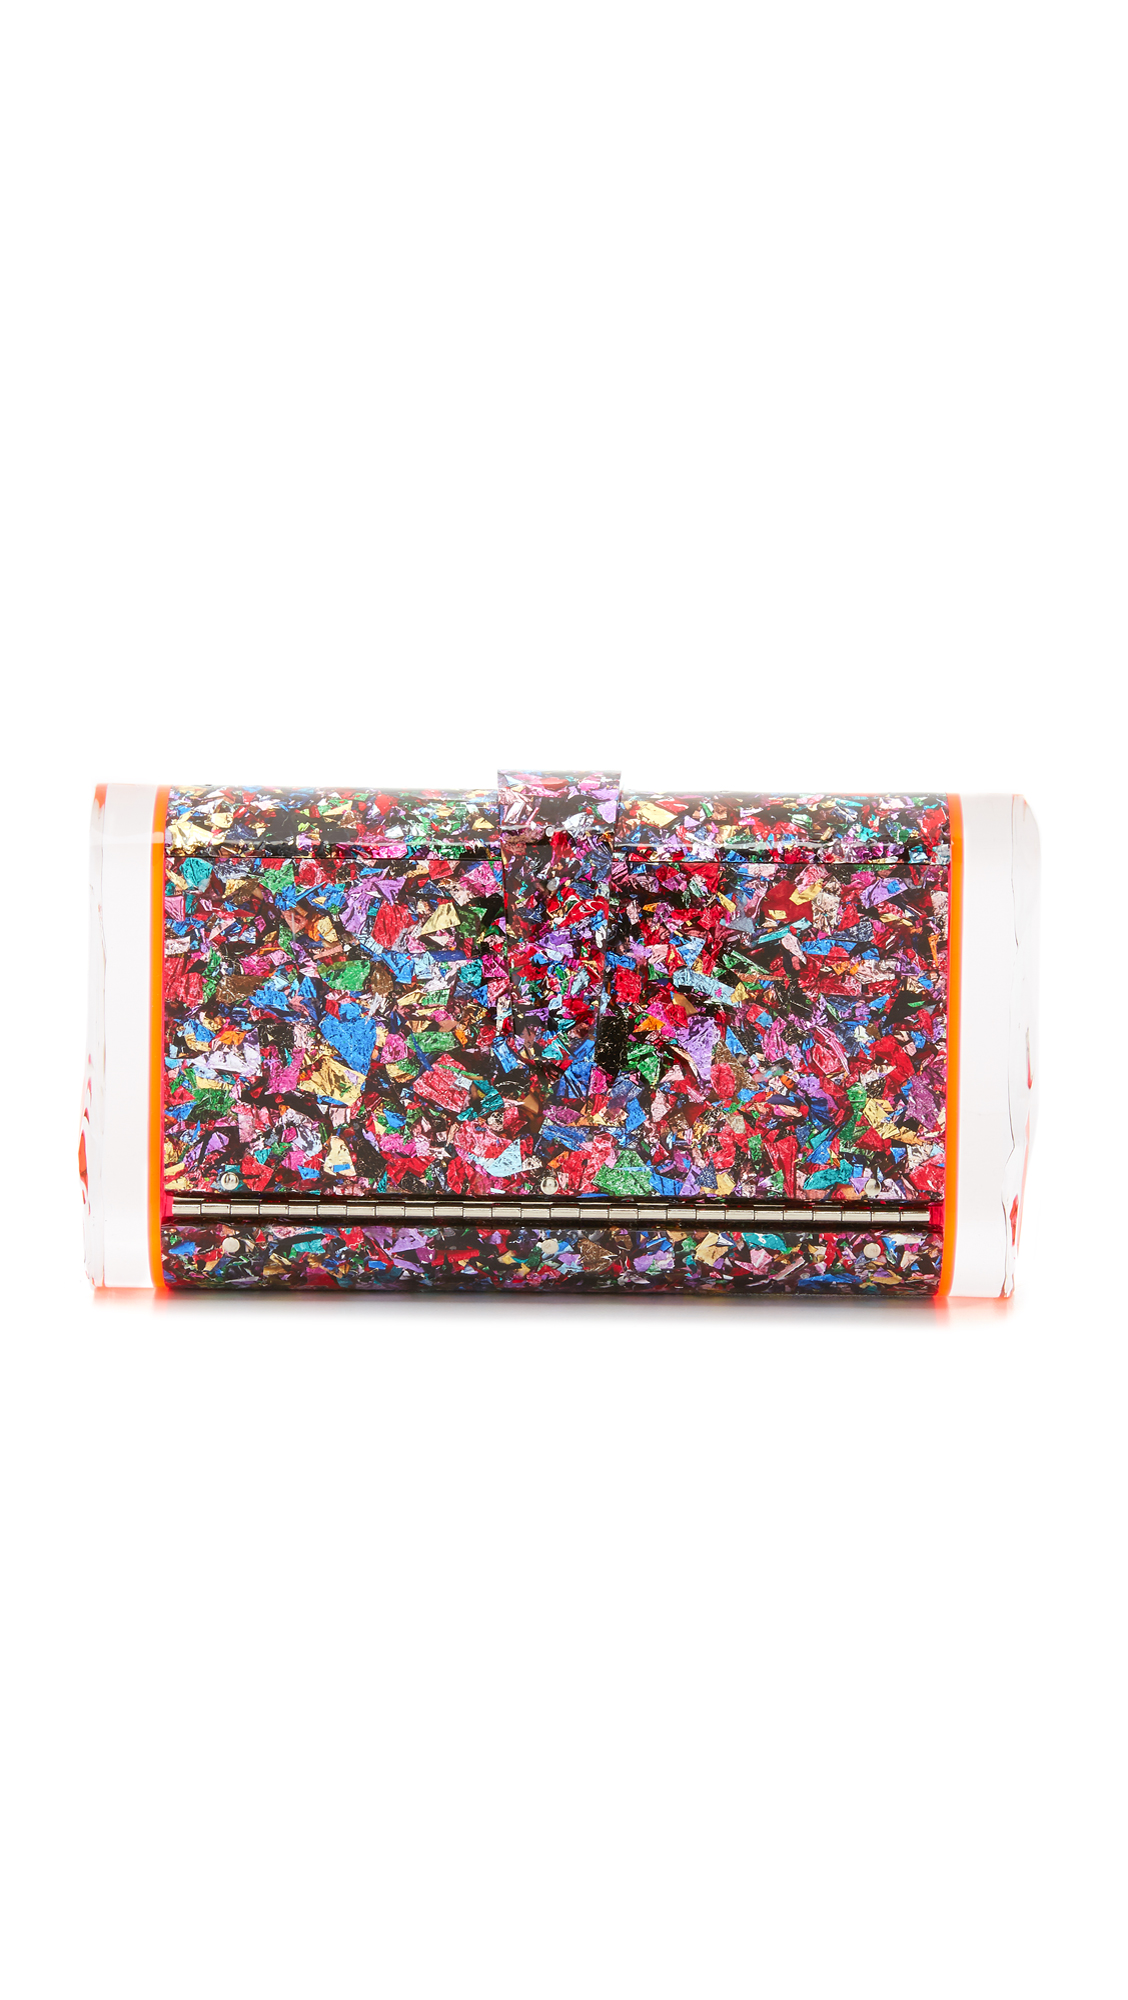 Glitter infused acrylic provides this Edie Parker clutch with a bold, elegant look. Textured sides. Snap closure at main flap. Unlined interior with mirror panel. Dust bag and cleaning cloth included. Fabric: Acrylic. Weight: 21oz / 0.6kg.